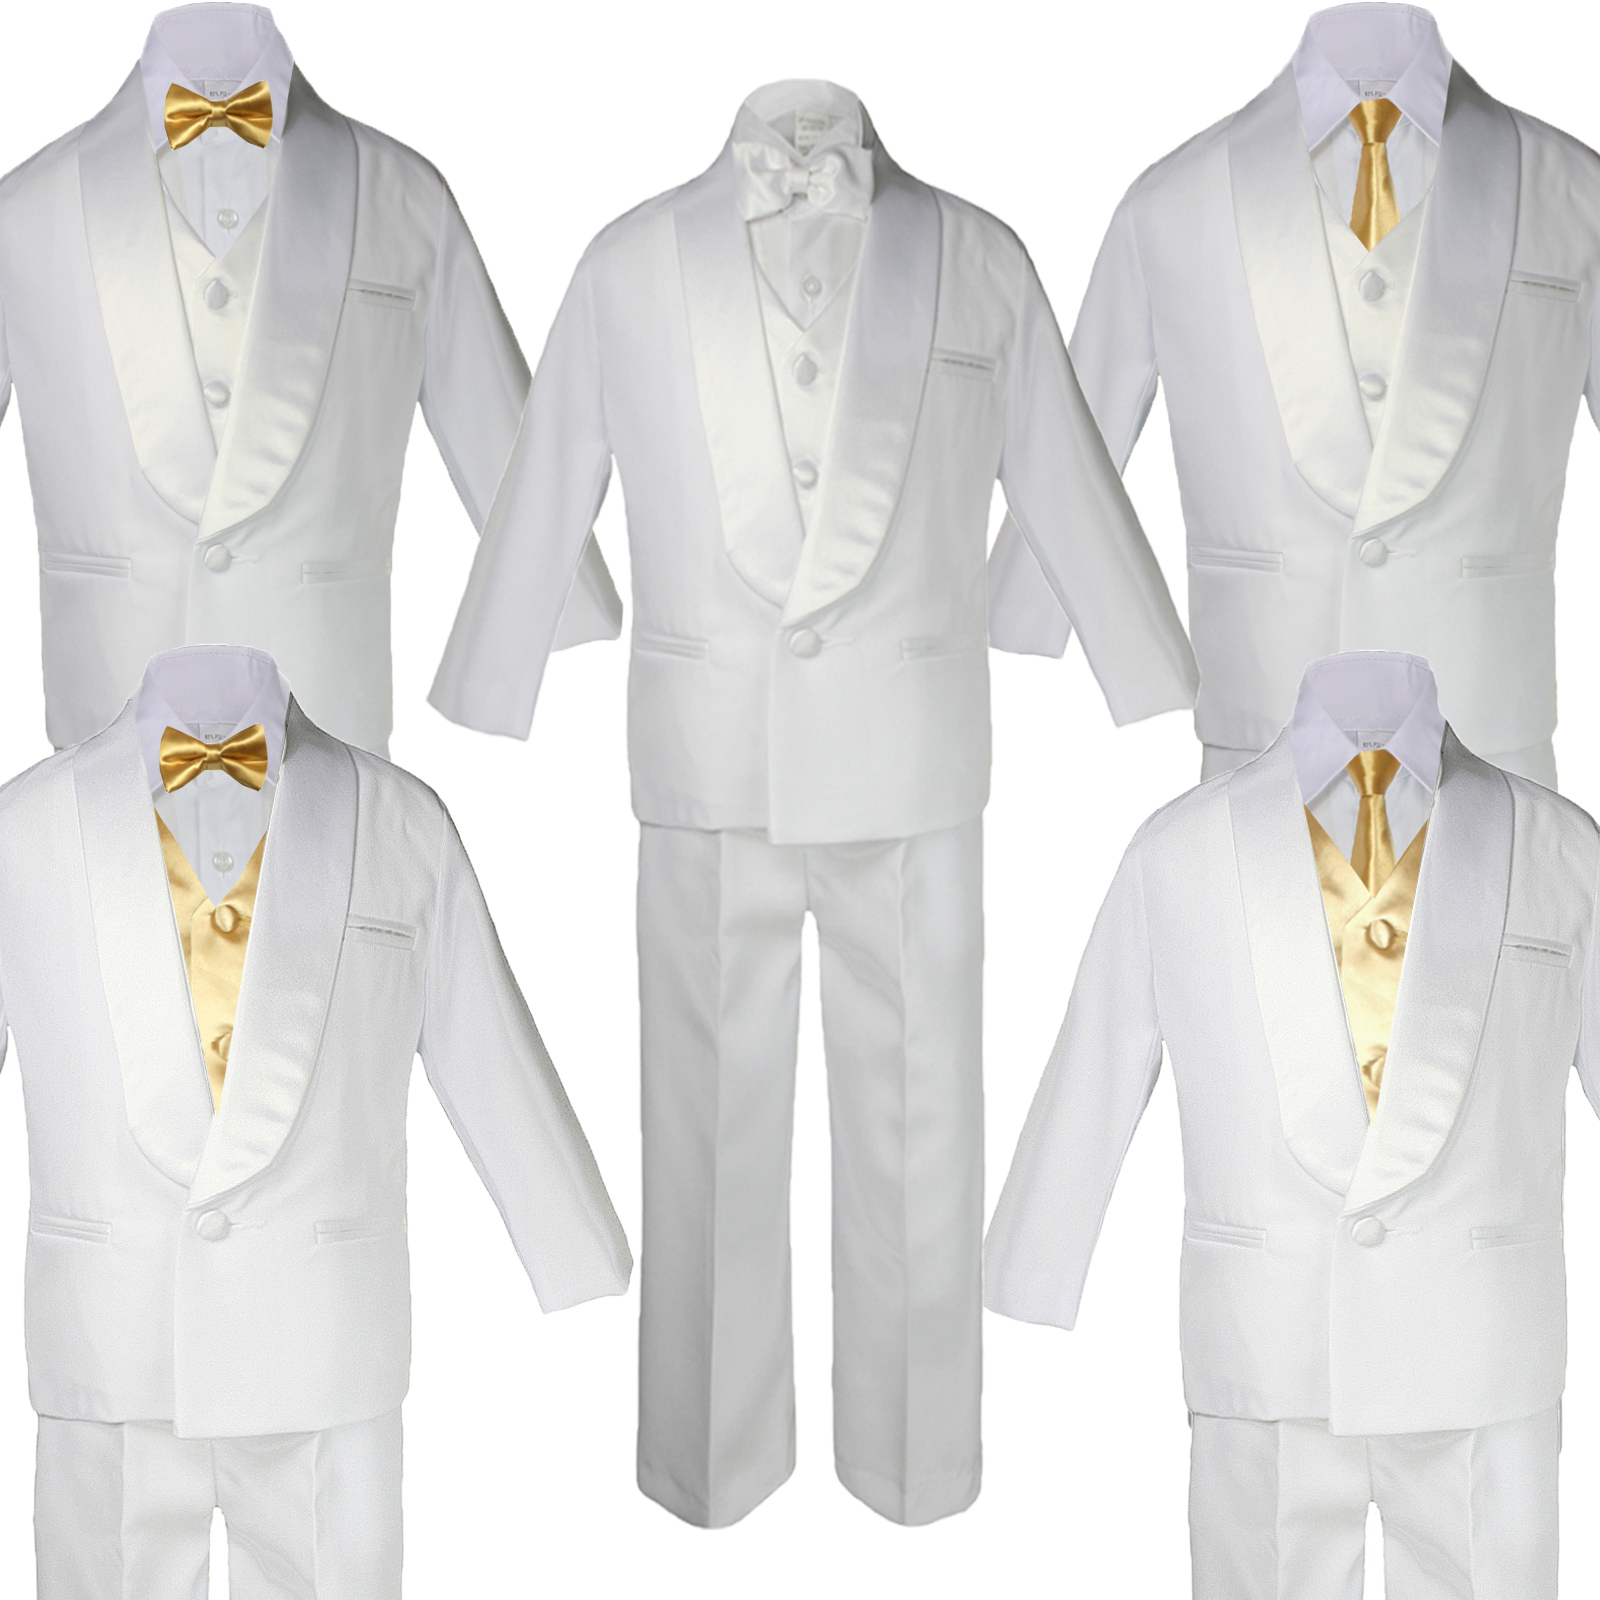 e6e0d94f9ef8 ... White Shawl Lapel Tuxedo with MUSTARD Bow Tie, Necktie, and Vest.  Choose your own Style. BY013